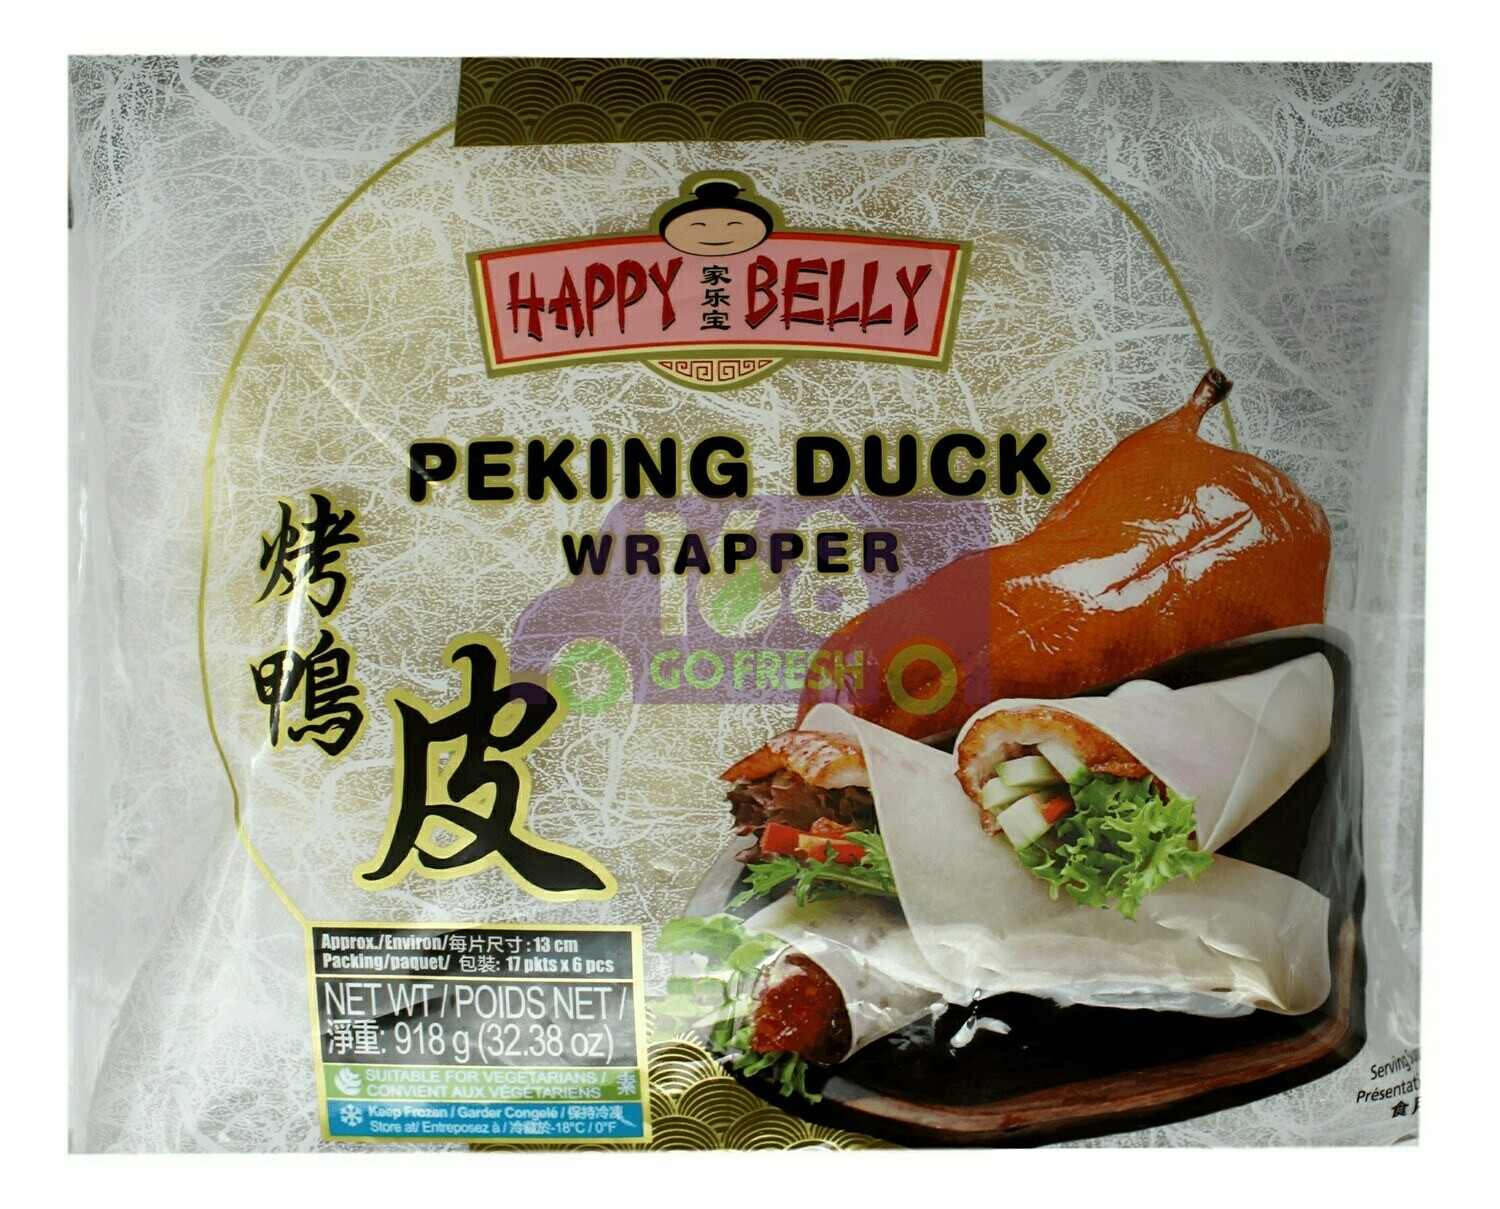 HAPPY BELLY PEKING DUCK WRAPPER 家乐宝 烤鸭皮(918G)